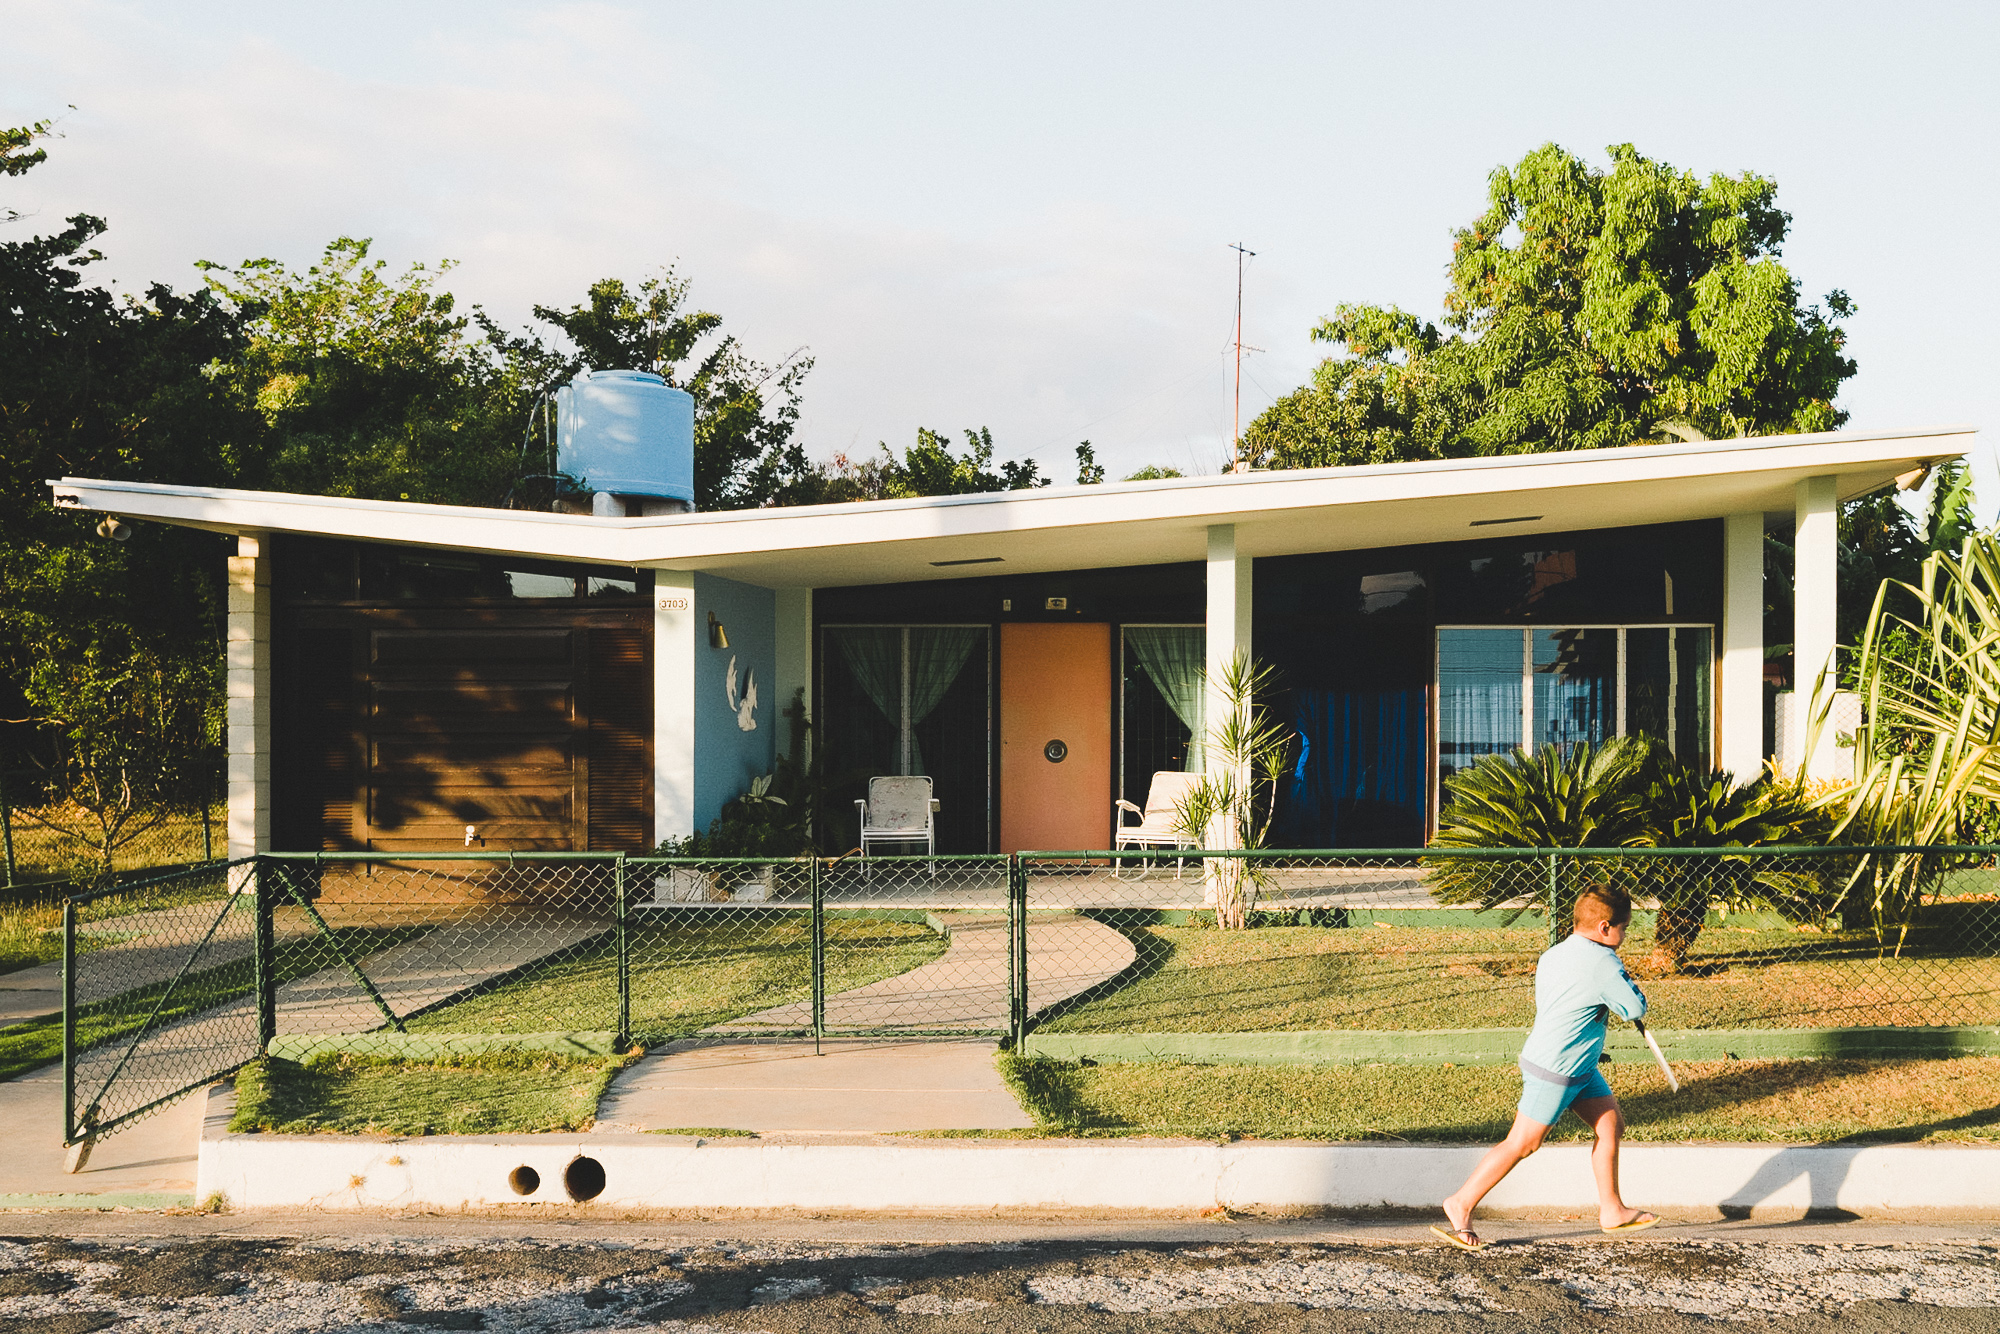 Lush 1950s Villas are one of the reasons to visit Cienfuegos, Cuba